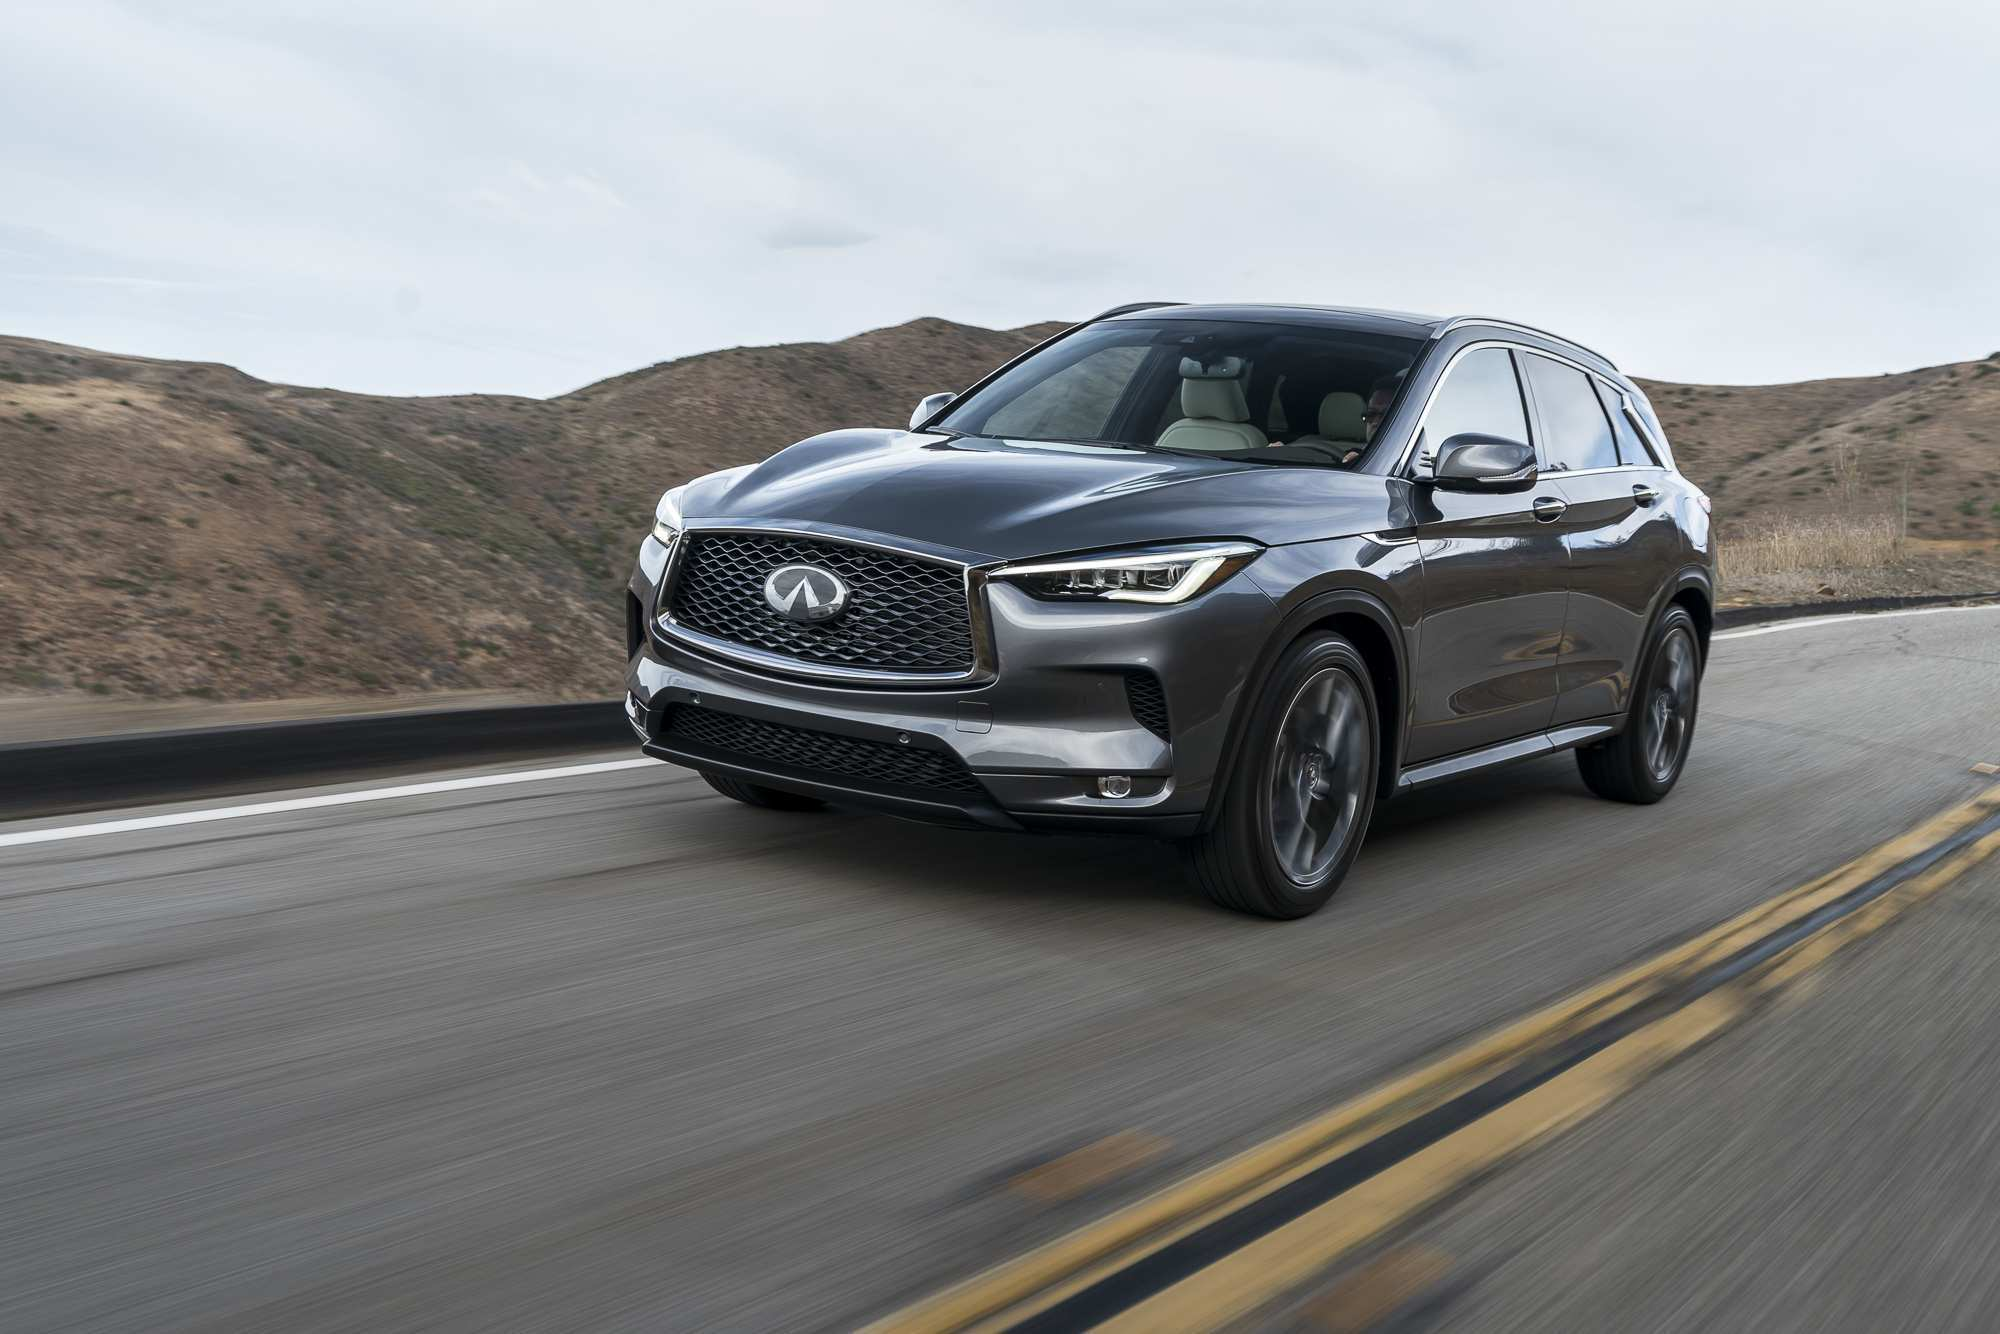 37 New 2019 Infiniti Crossover Specs and Review by 2019 Infiniti Crossover